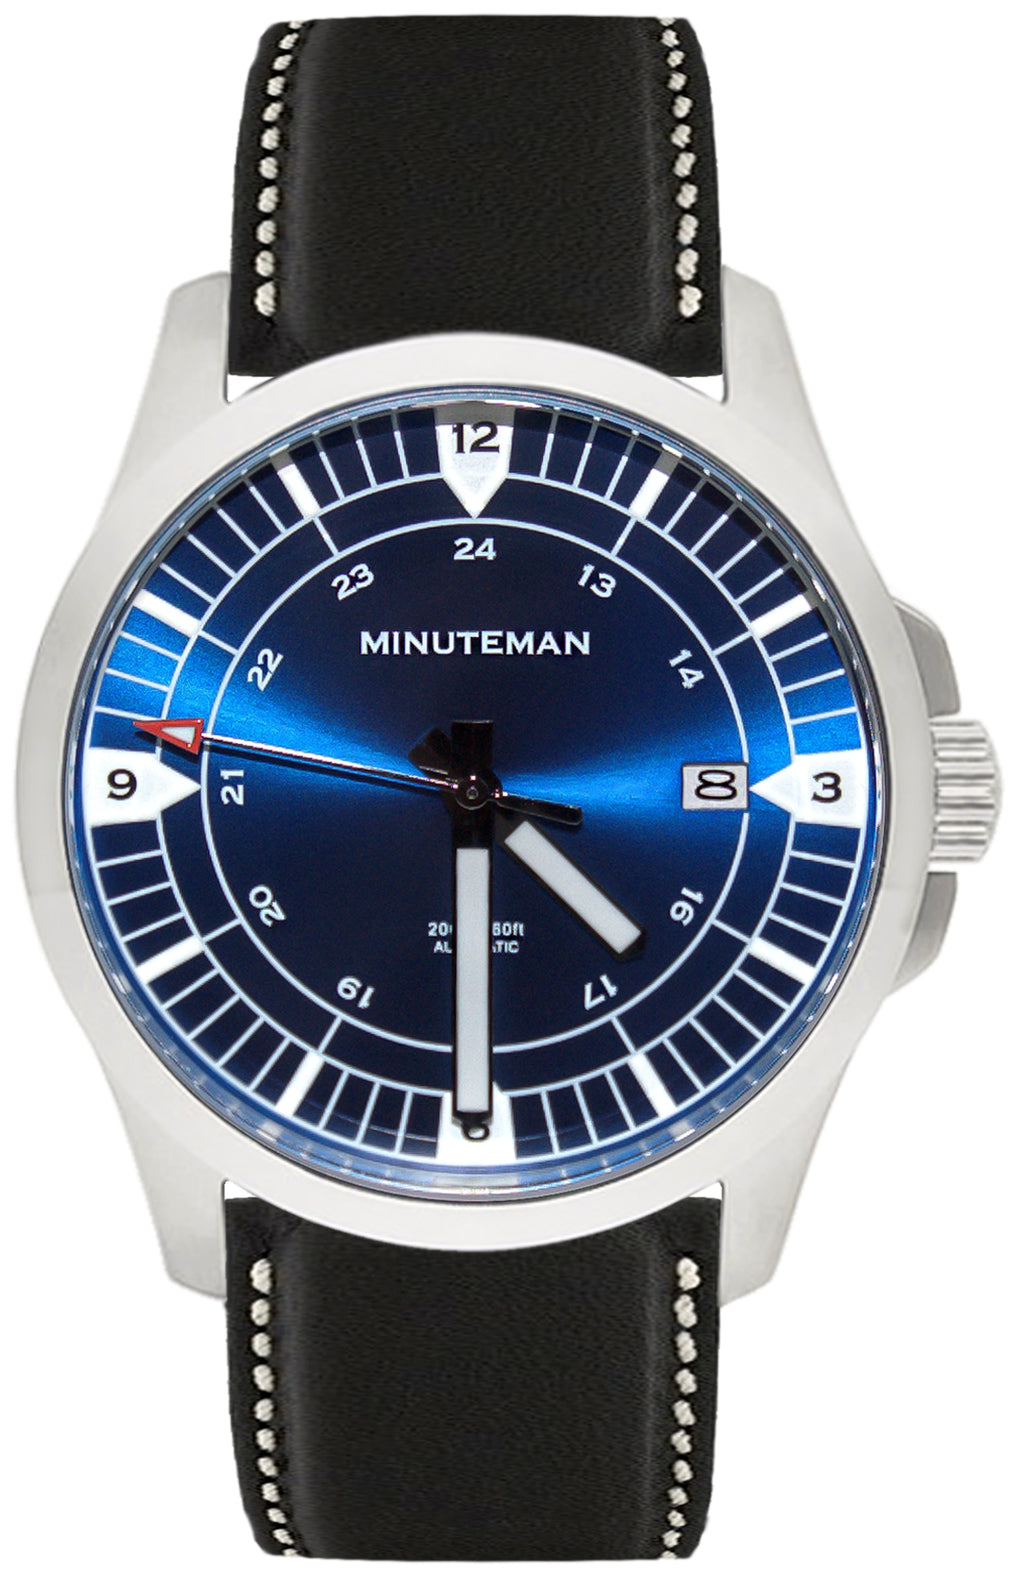 Minuteman RWB brushed finish leather strap wristwatch - The CGA Company